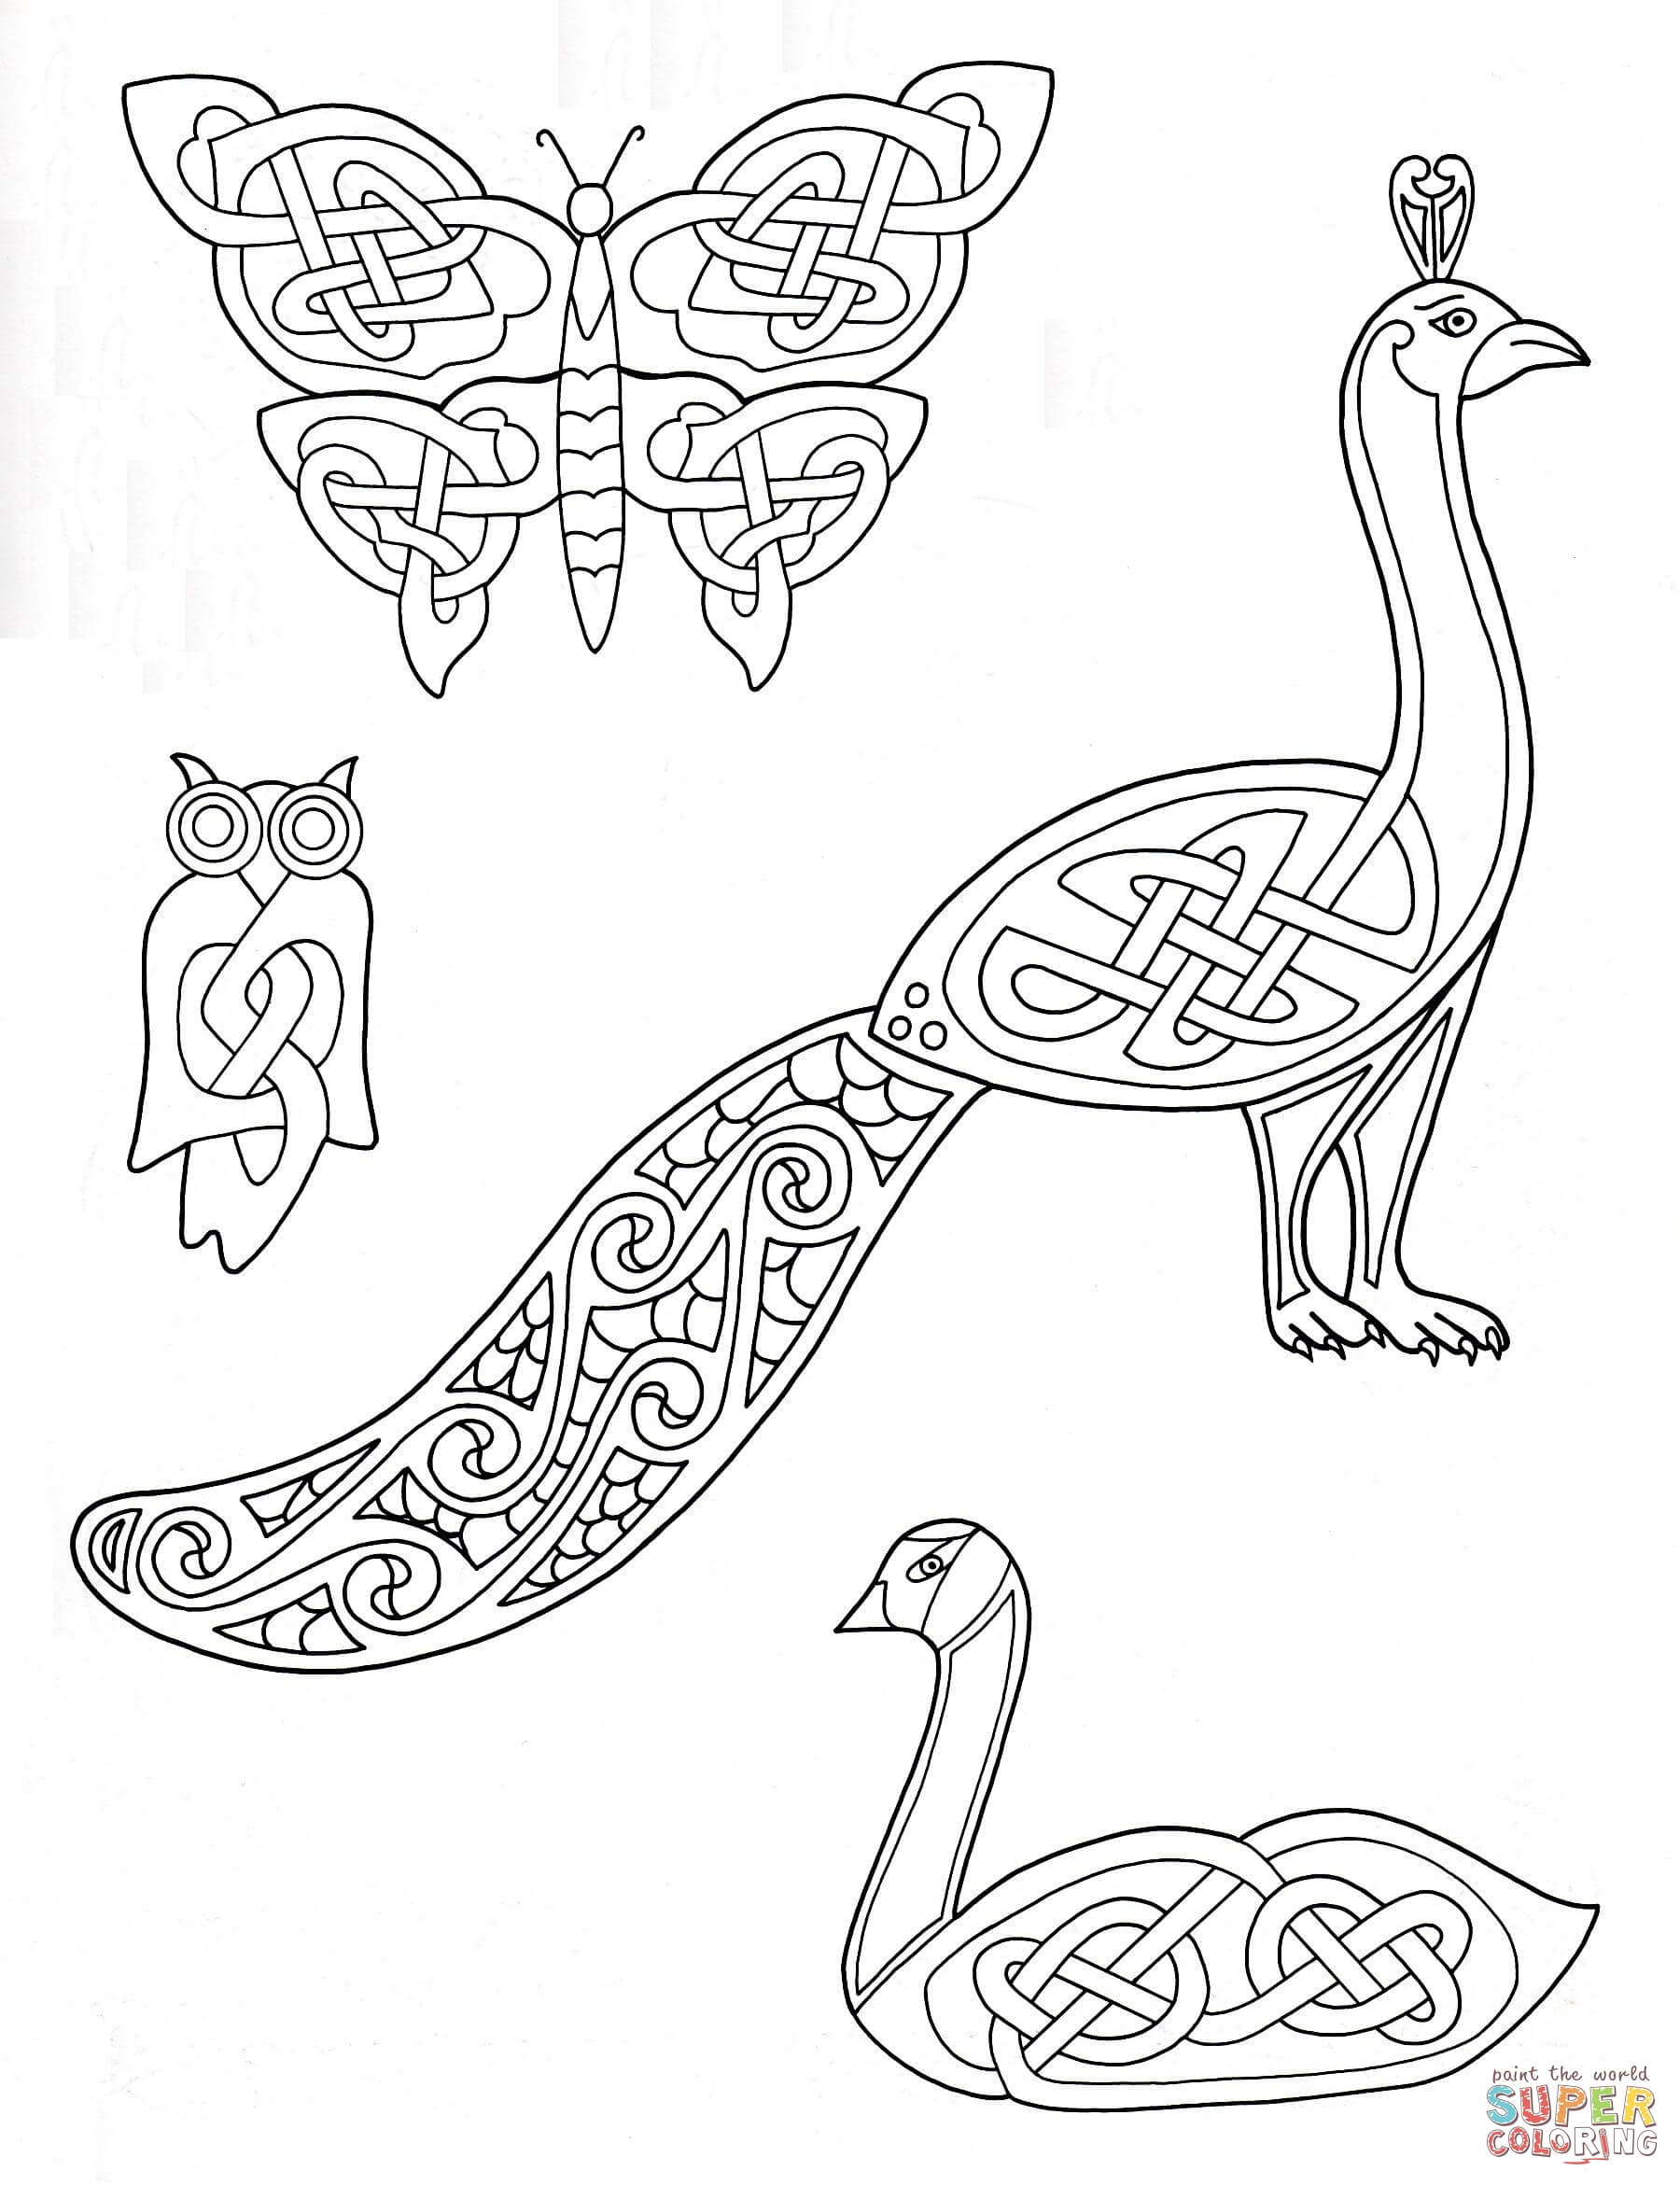 Drawn peacock celtic Animals Coloring Celtic the Animals